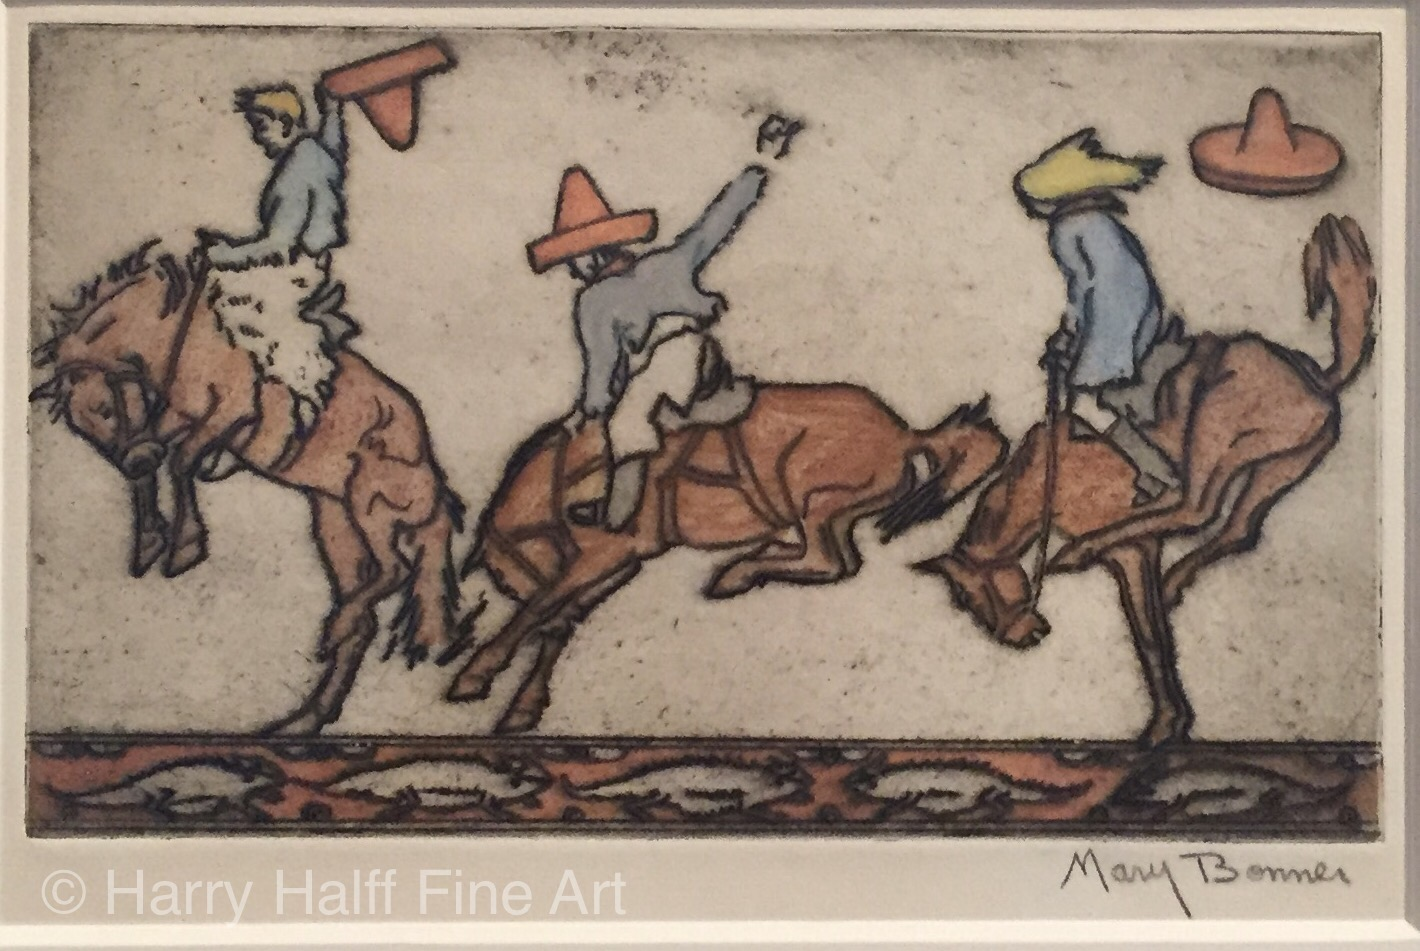 Mary Bonner handcolored etching titled Three Bucking Broncos